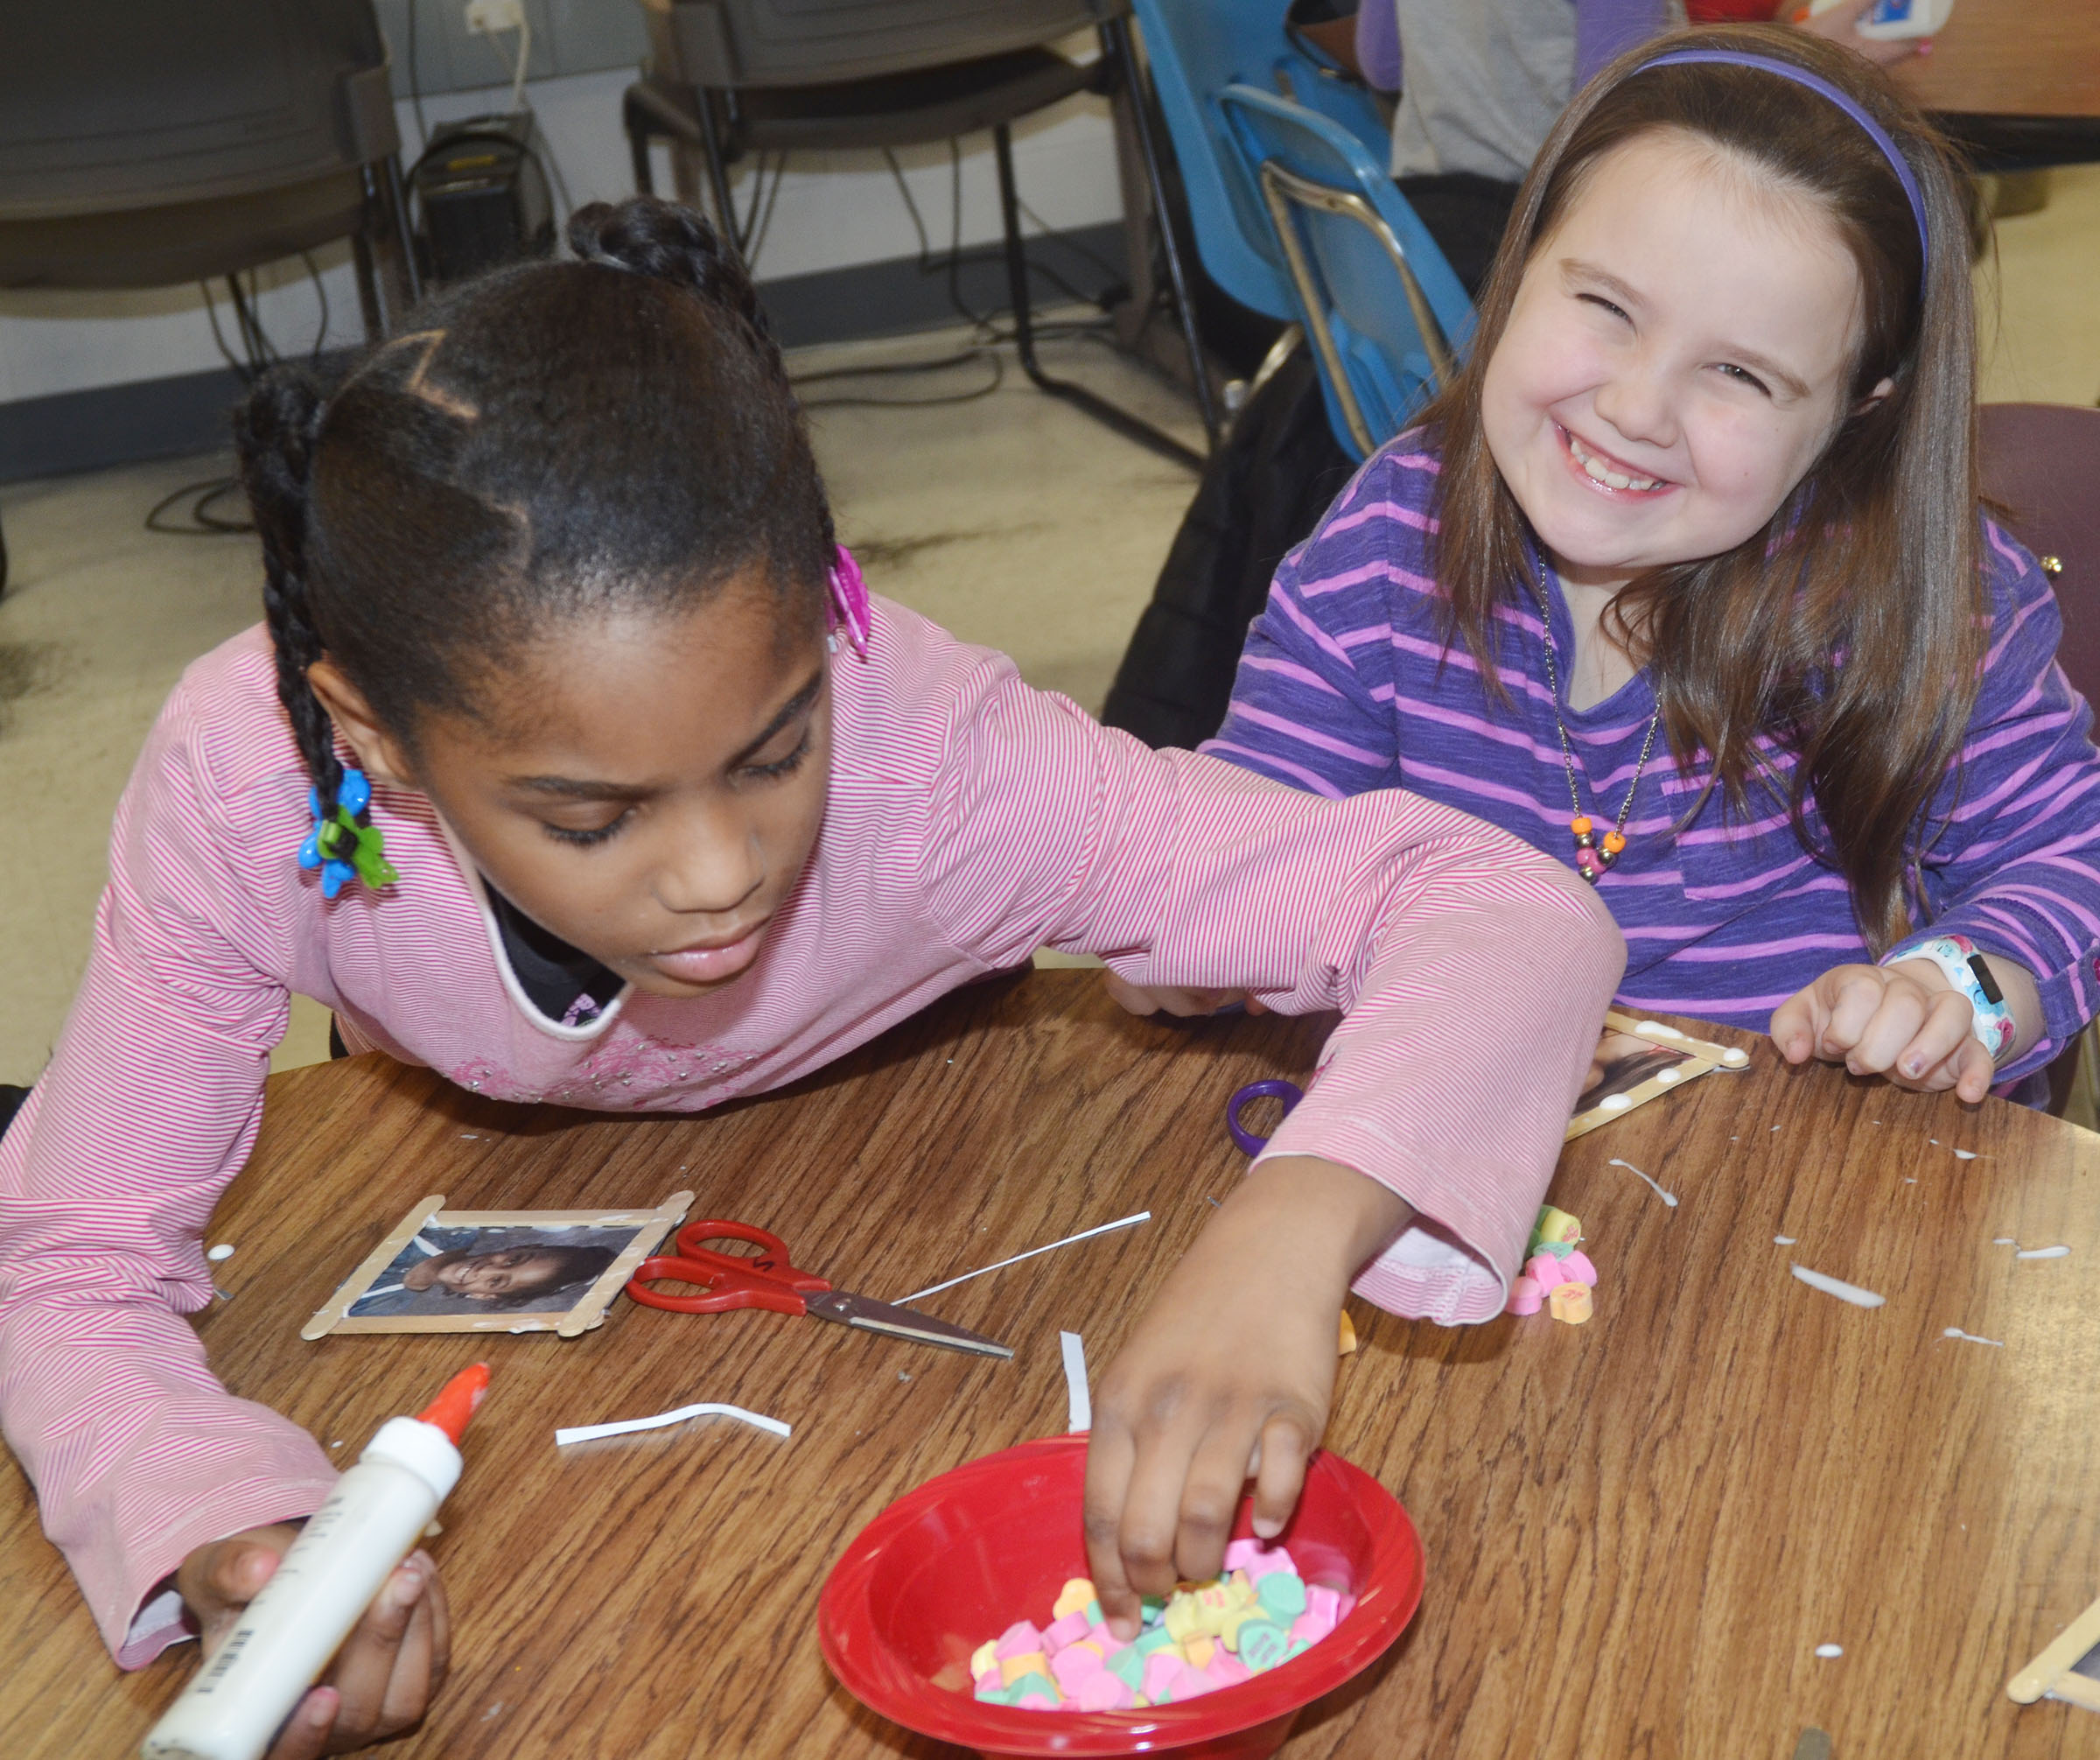 CES third-graders Breona Bridgewater, at left, and Maylee Wilds glue candies on their picture frames.